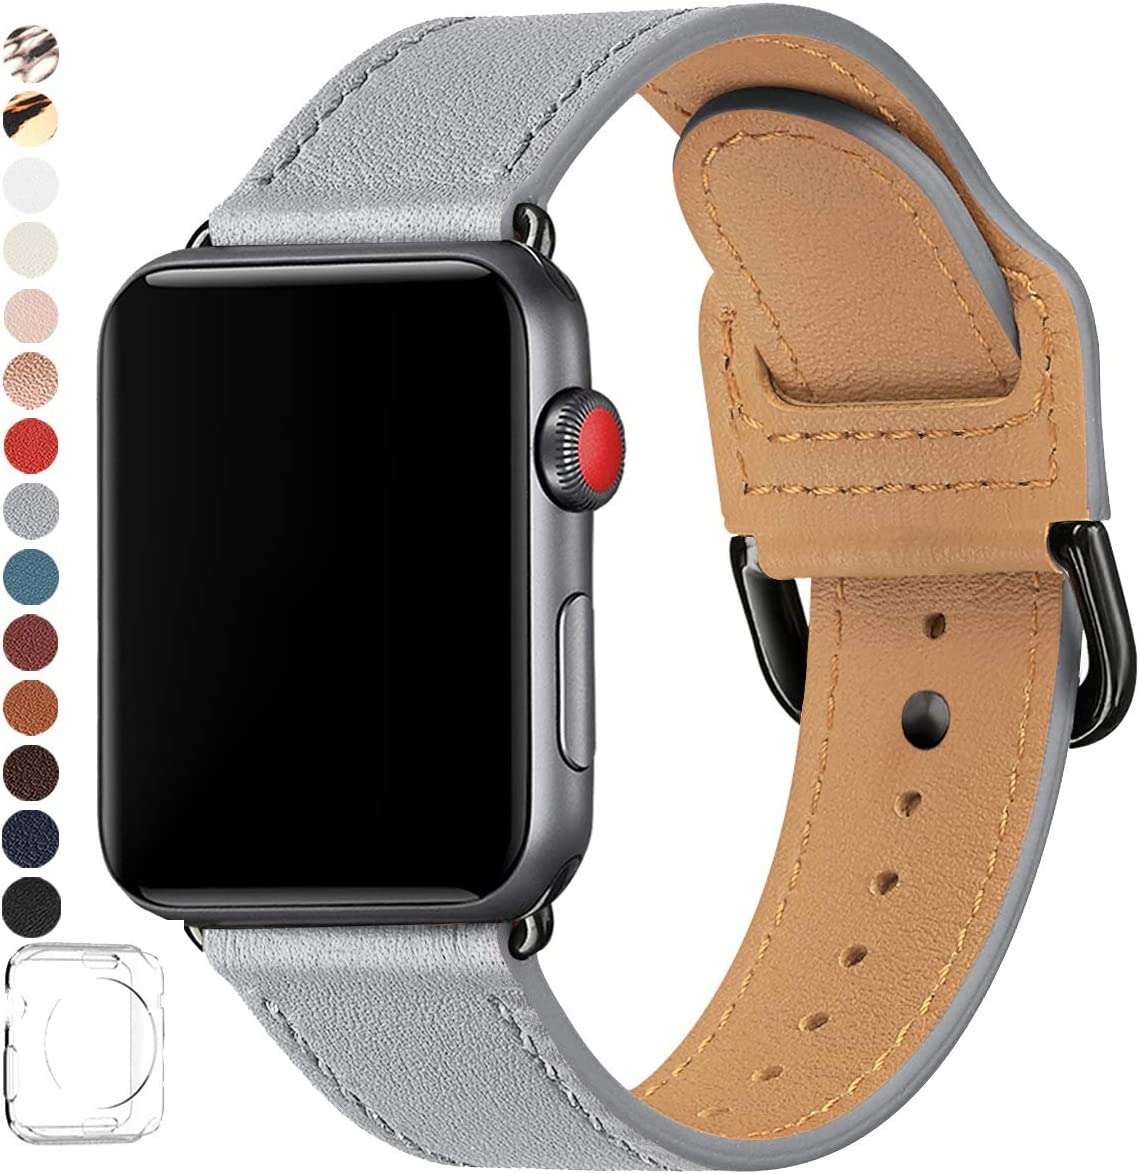 POWER PRIMACY Bands Compatible with Apple Watch Band 38mm 40mm 42mm 44mm, Top Grain Leather Smart Watch Strap Compatible for Men Women iWatch Series 5 4 3 2 1(Light Gray/Black,38mm/40mm)